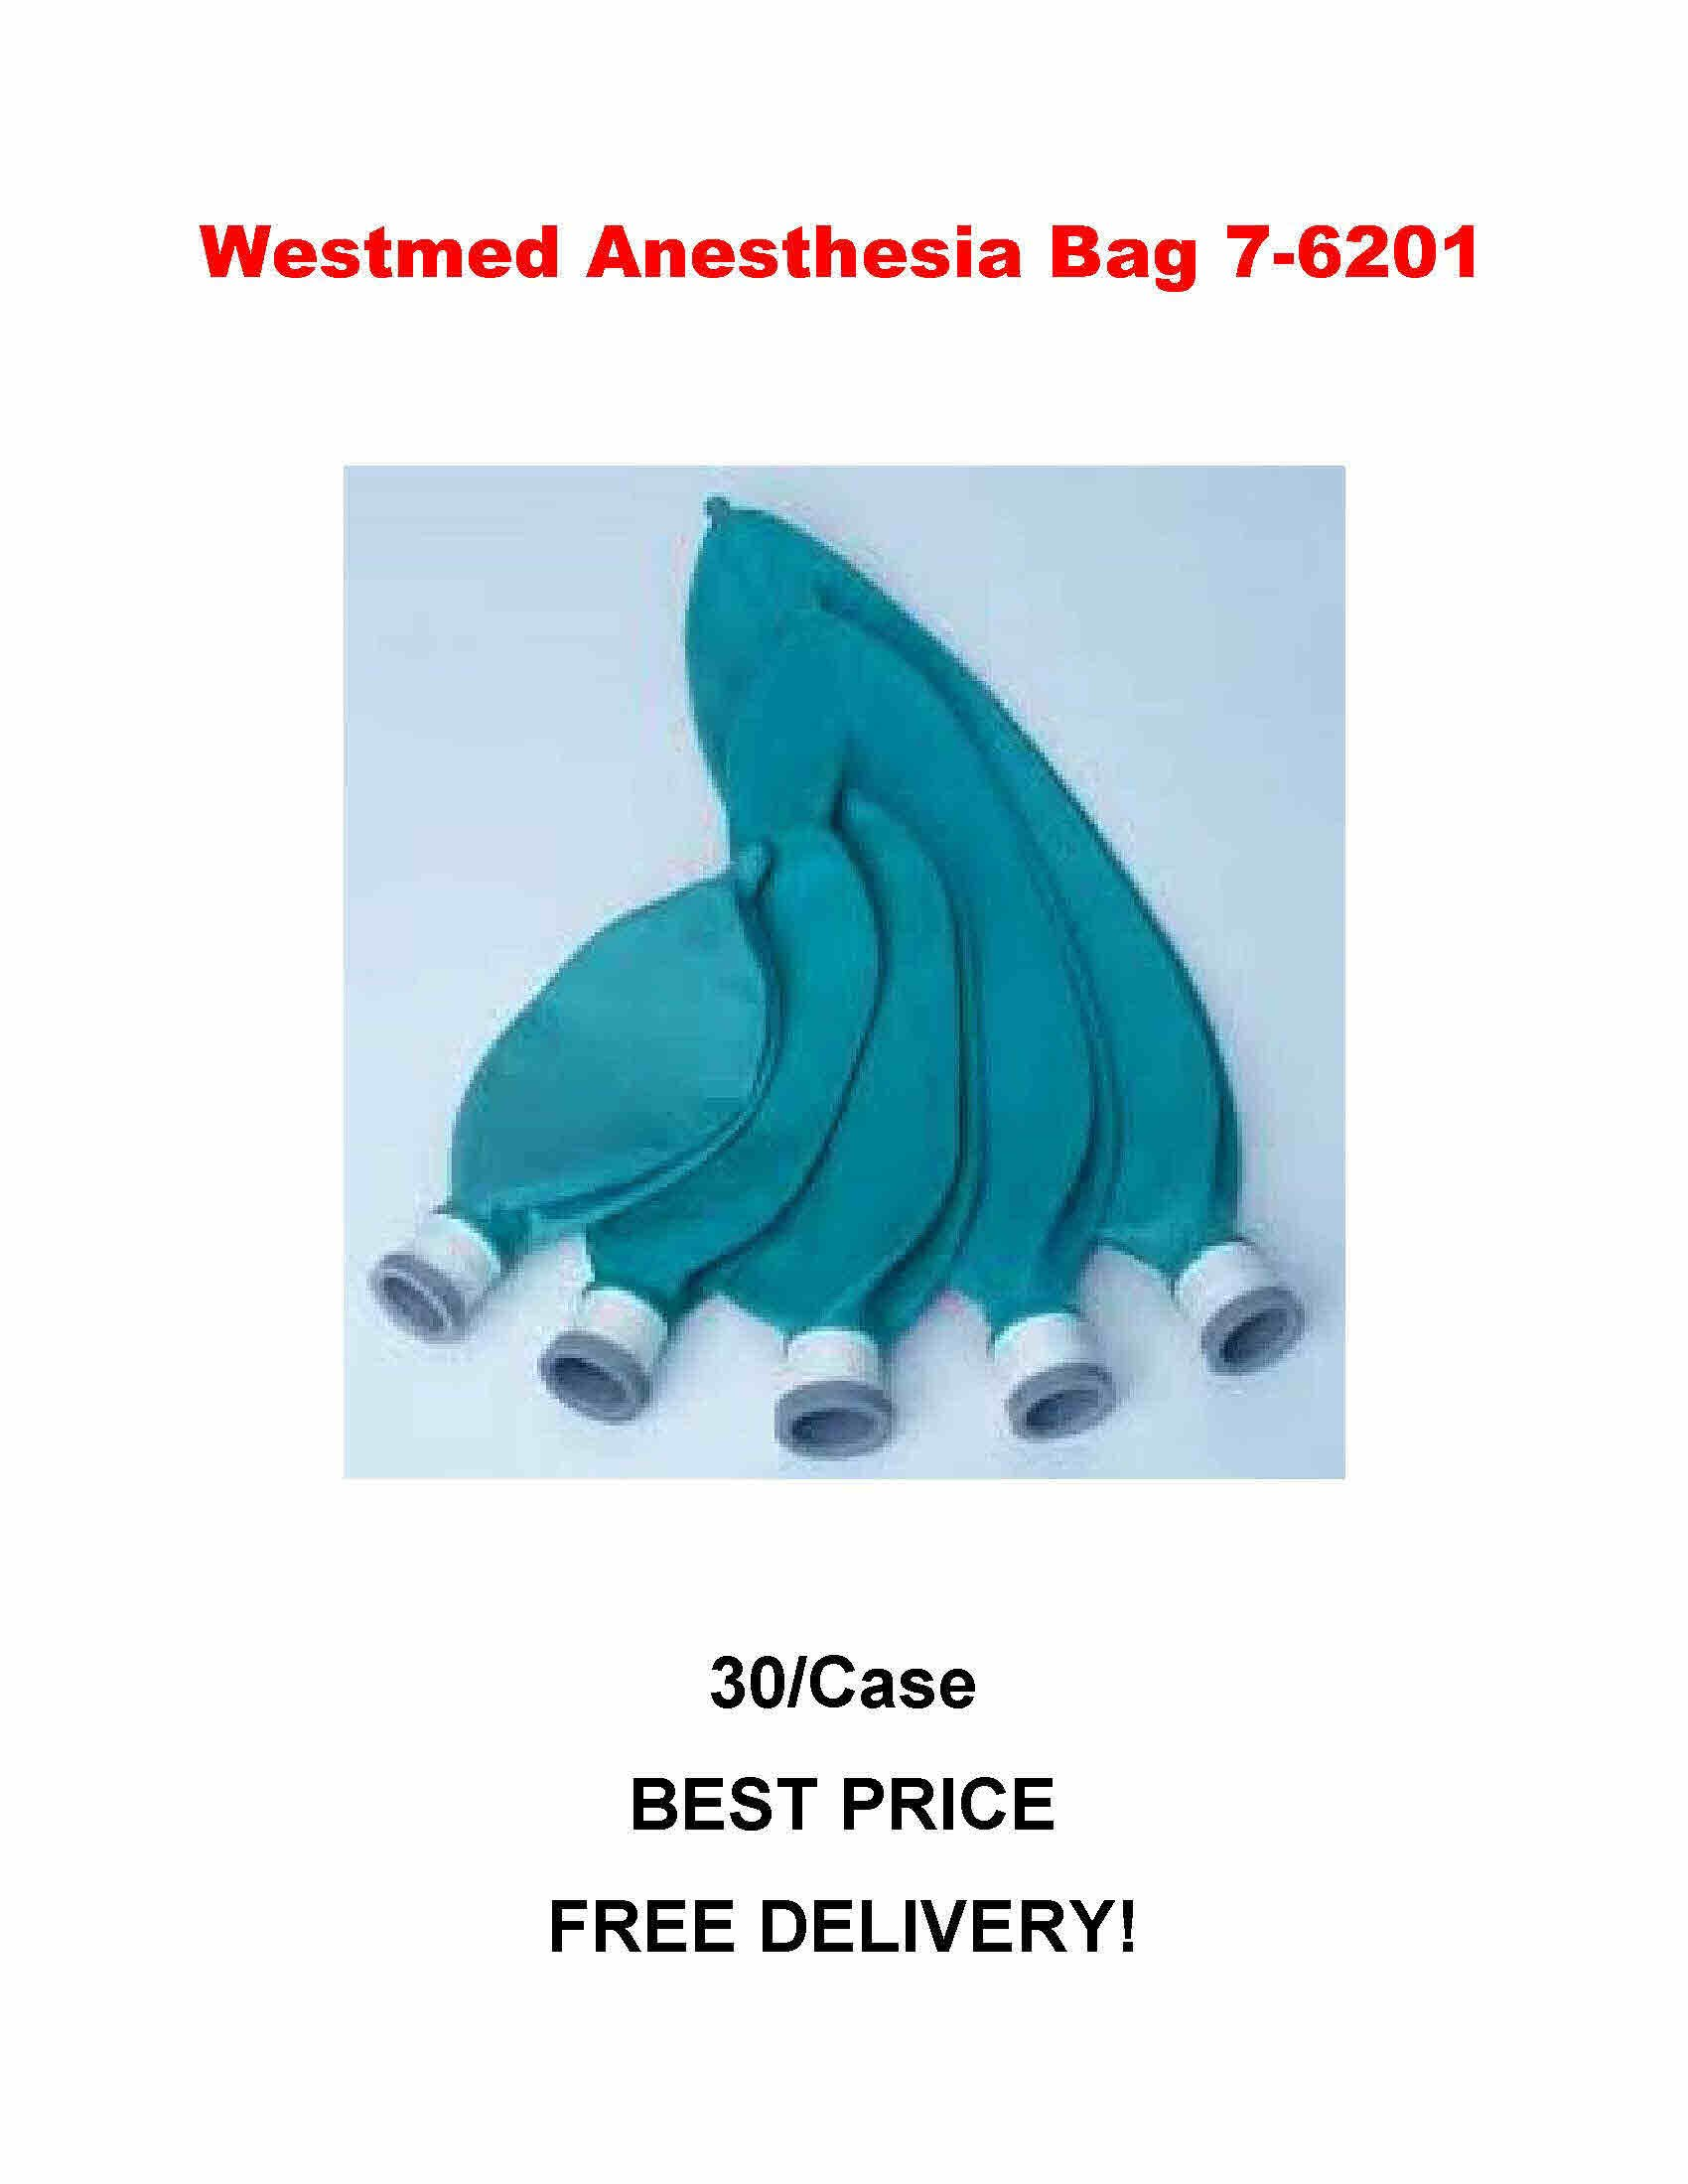 Westmed Anesthesia Bag